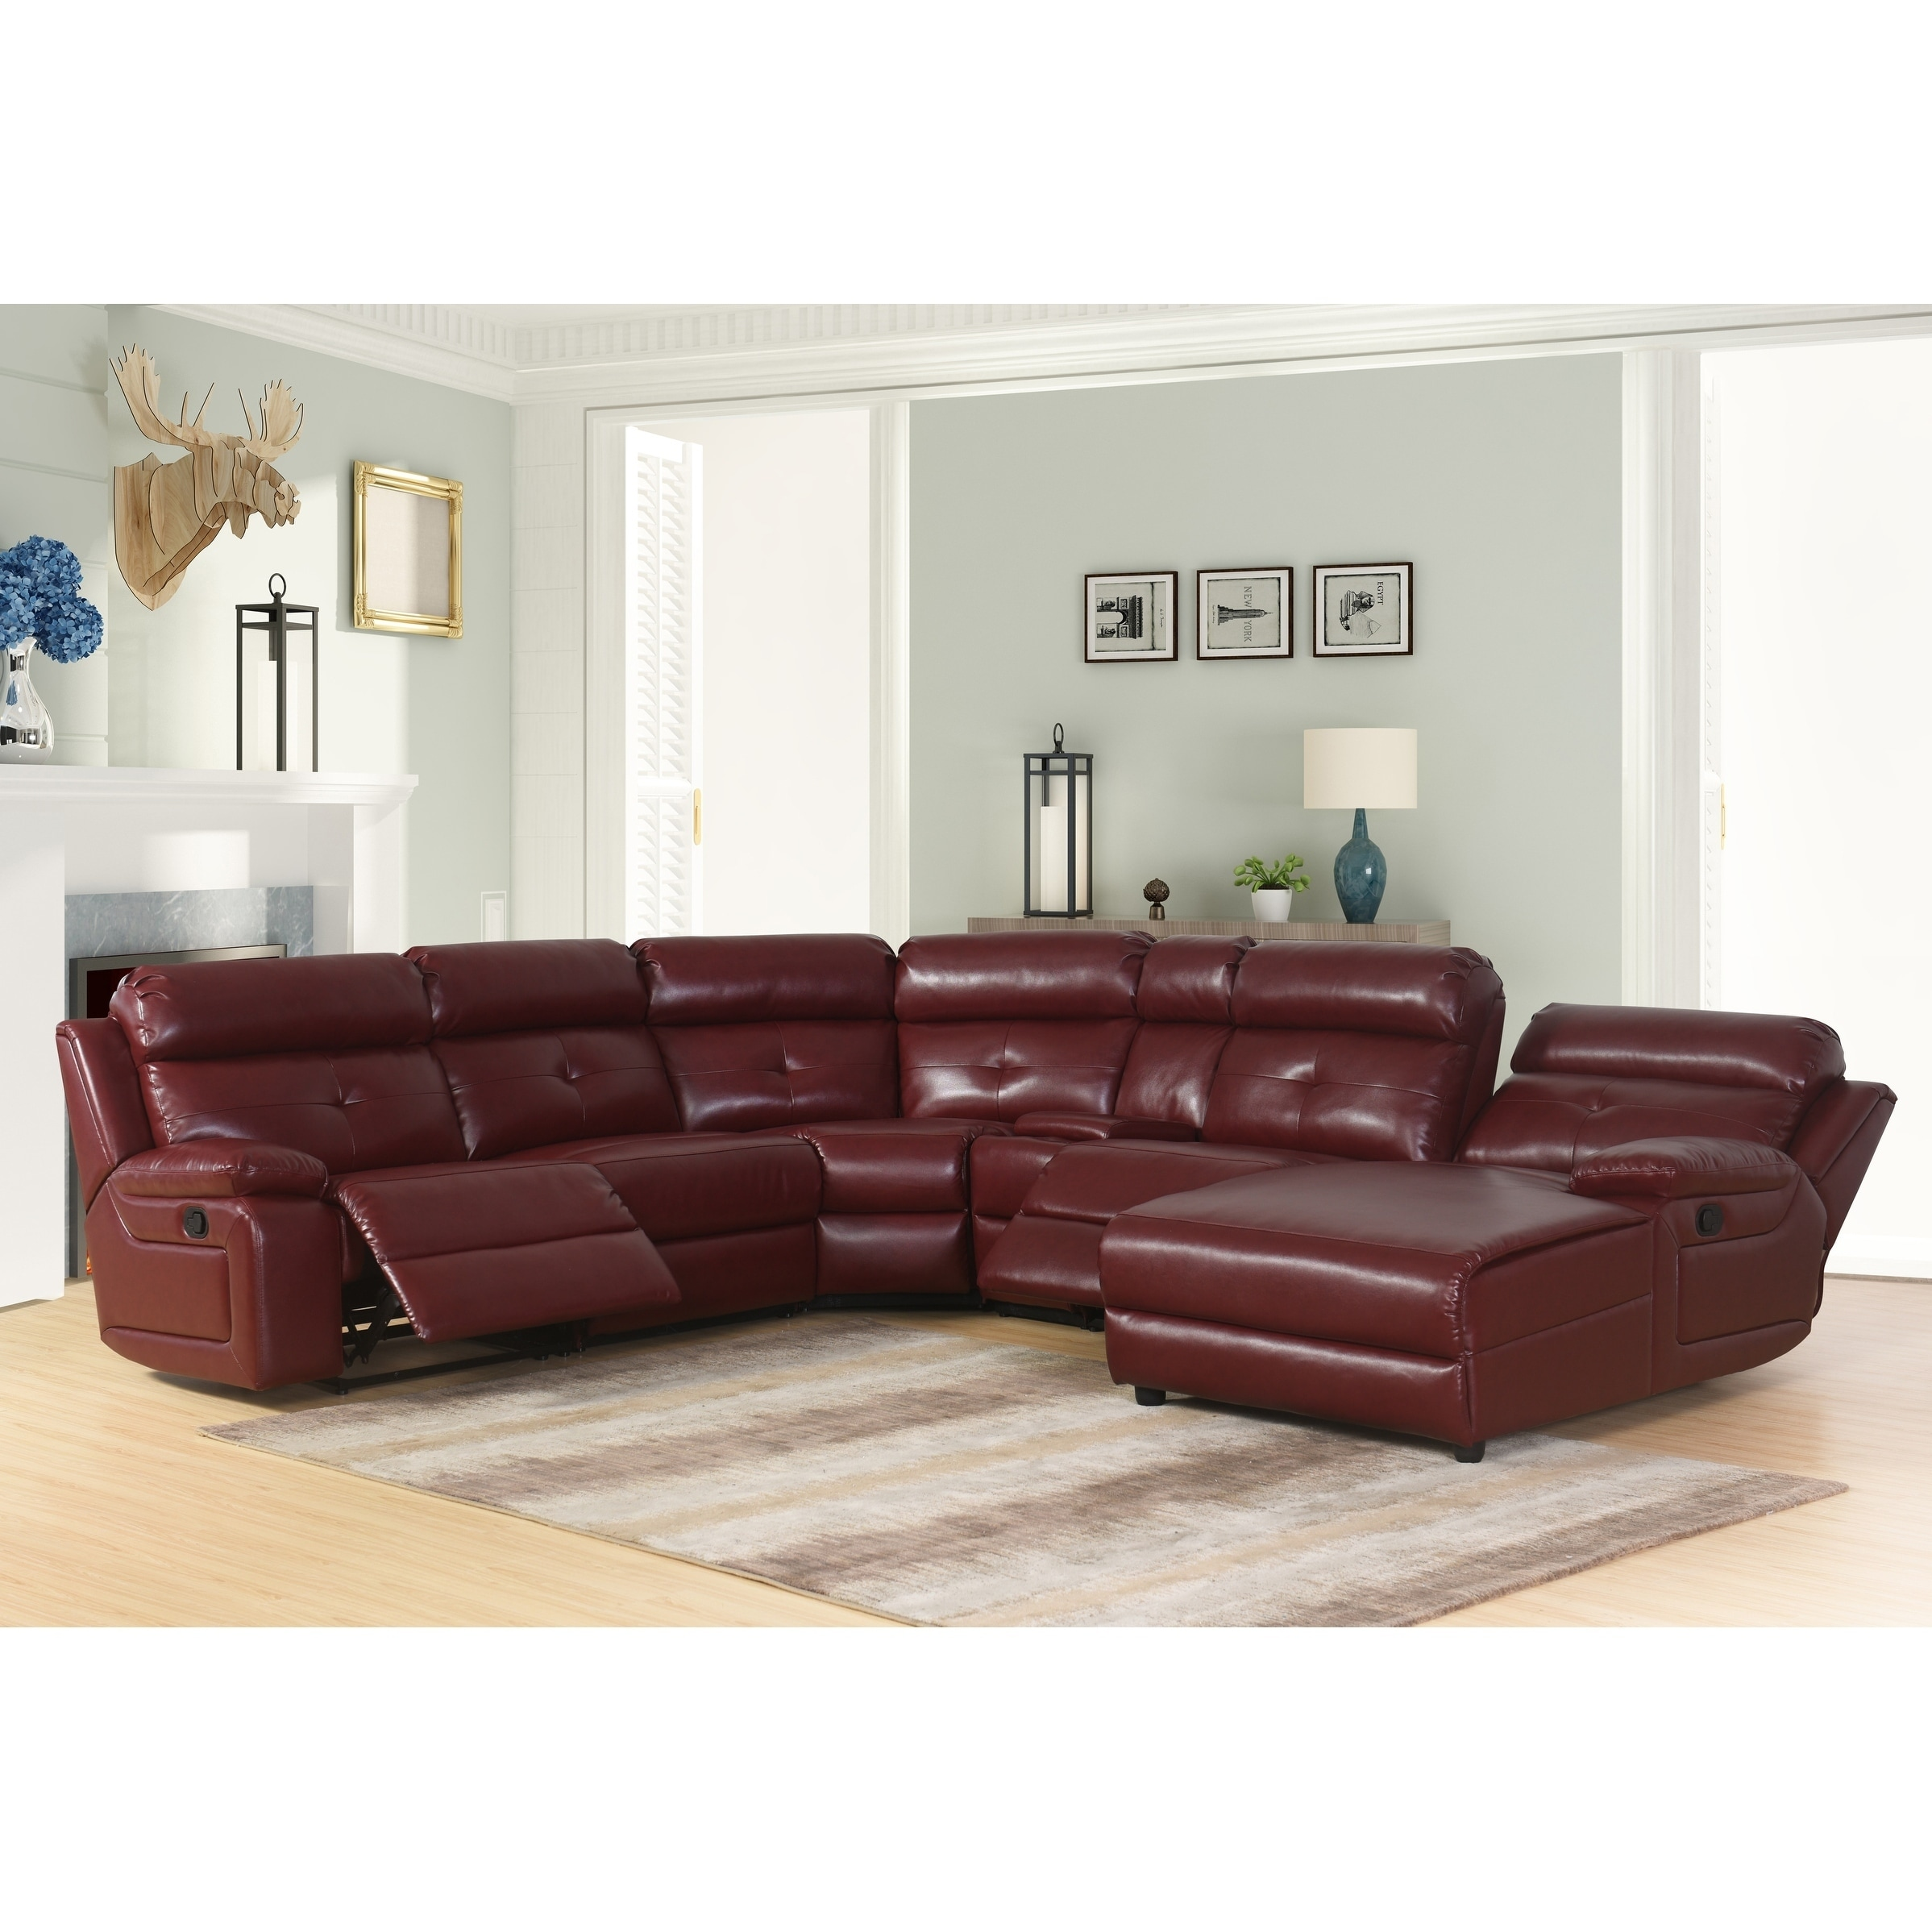 Abbyson Stevens 6 Piece Red Bonded Leather Reclining Sectional On Free Shipping Today 21131608